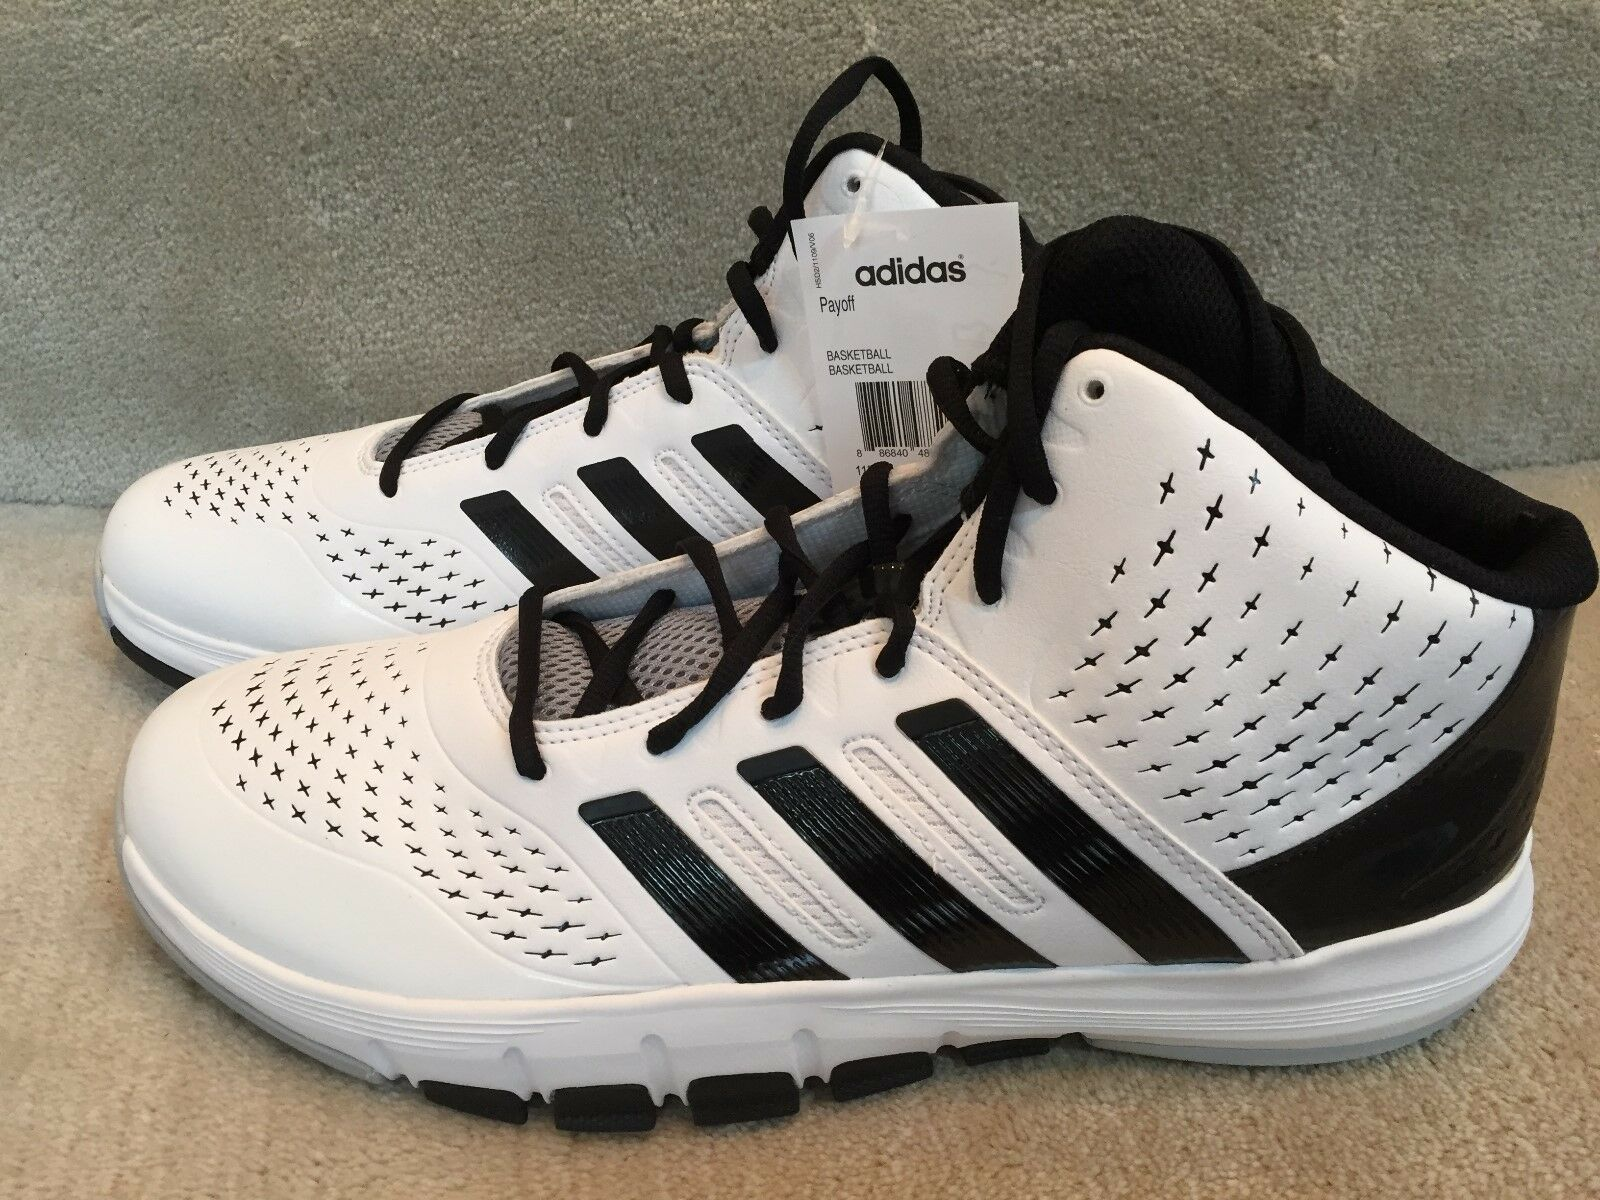 ADIDAS PAYOFF WHITE BLACK SIZE 12 NEW WITH BOX